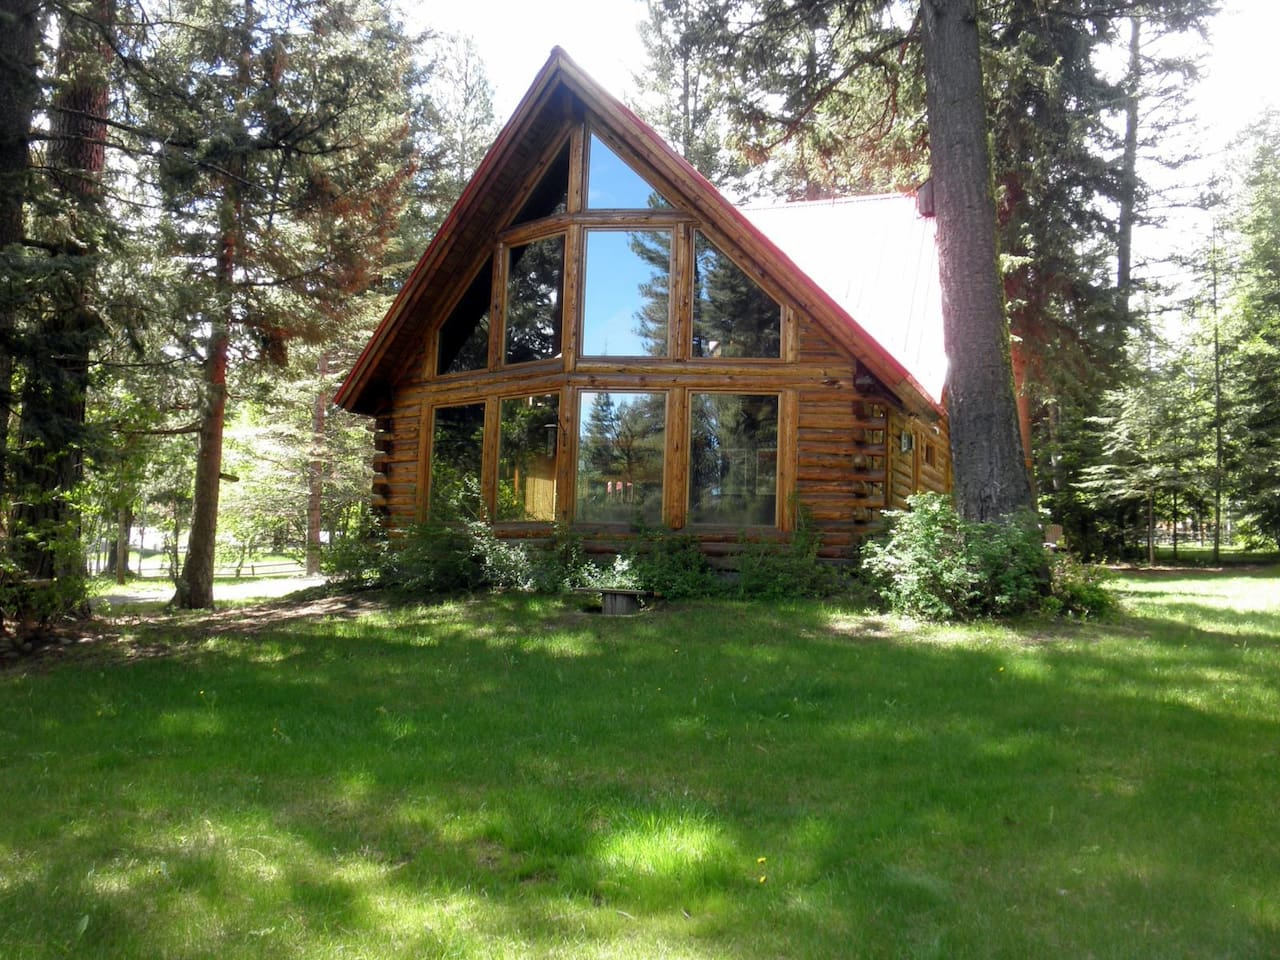 Bear Lodge, tucked into the woods